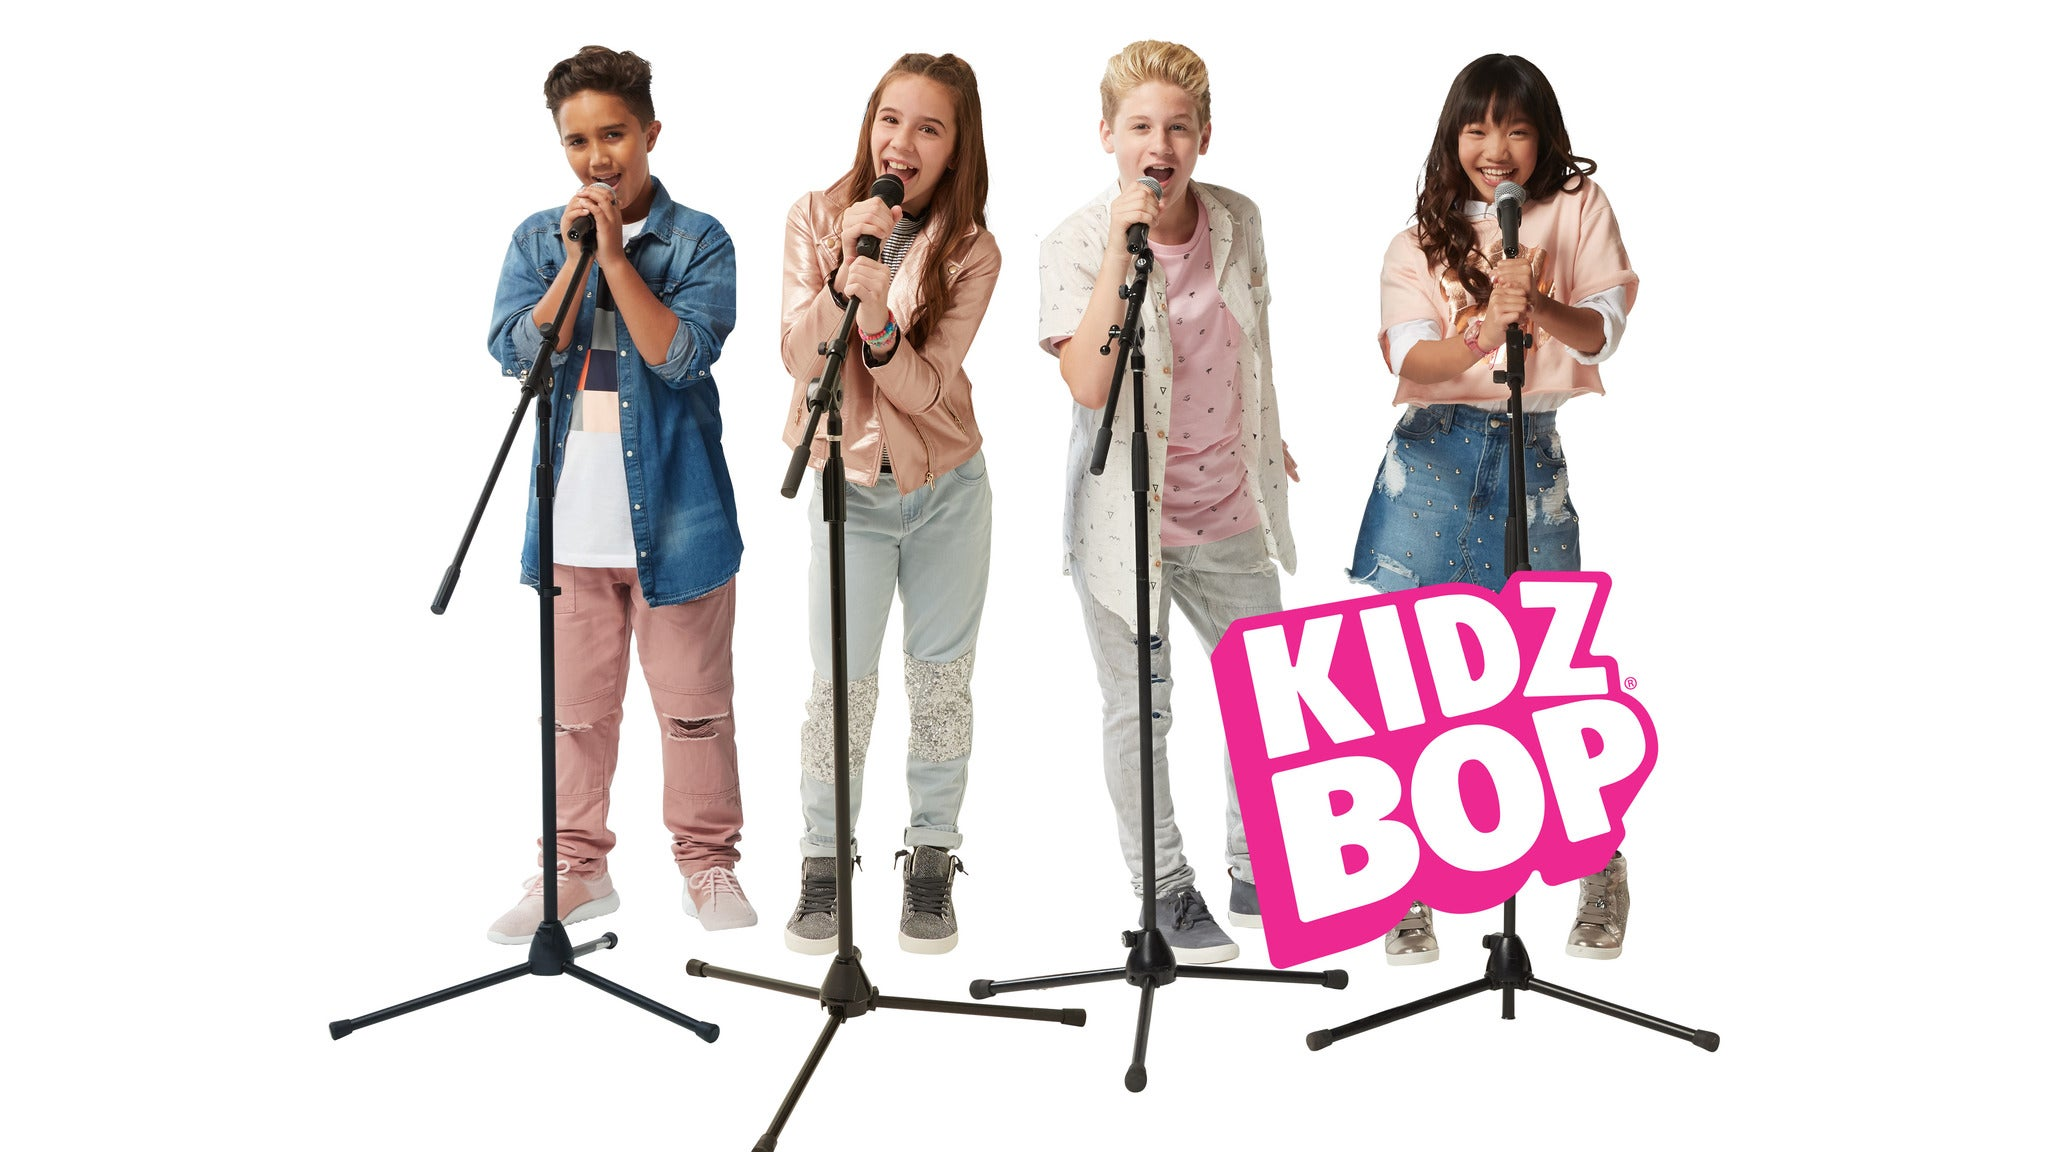 Kidz Bop - Upgrade Meet & Greet Packages at Boardwalk Hall - Atlantic City, NJ 08401